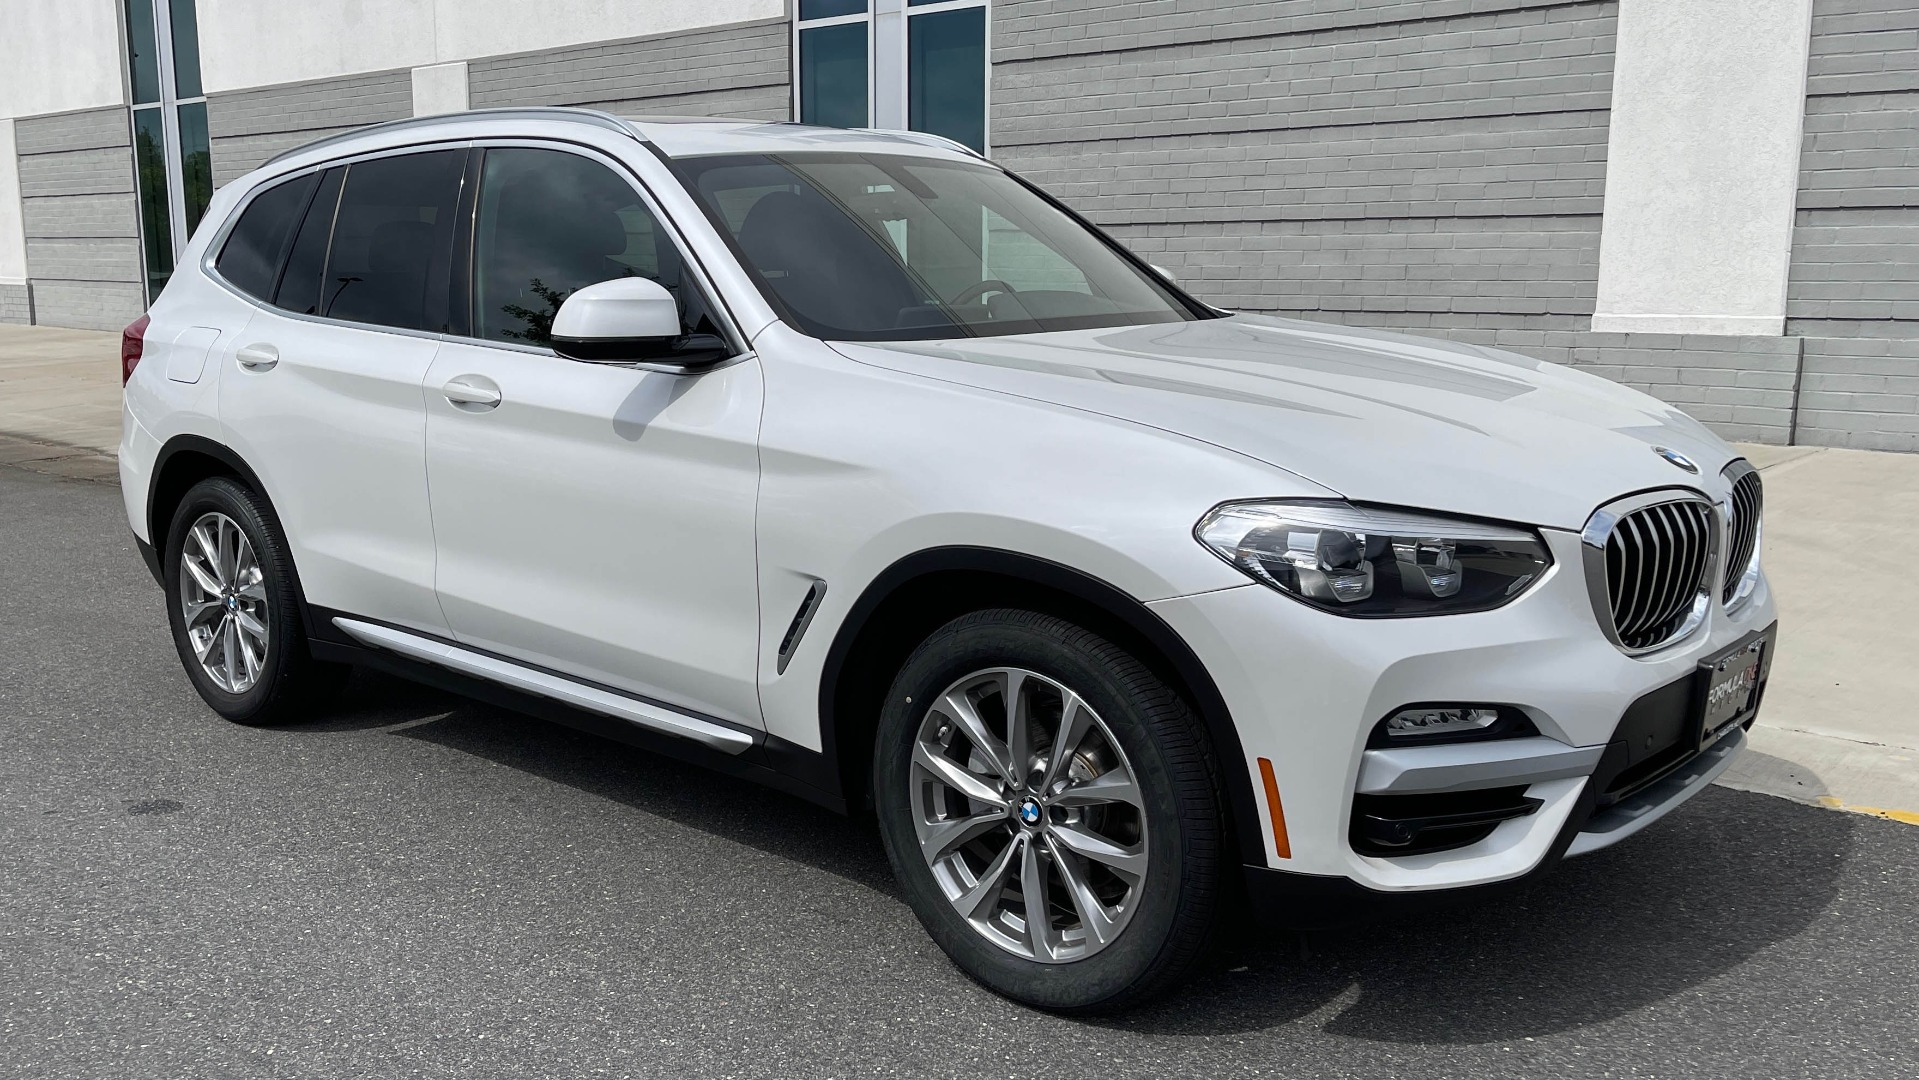 Used 2018 BMW X3 XDRIVE30I / NAV / PANO-ROOF / HTD STS / PARK DIST CNTRL / REARVIEW for sale $38,995 at Formula Imports in Charlotte NC 28227 5